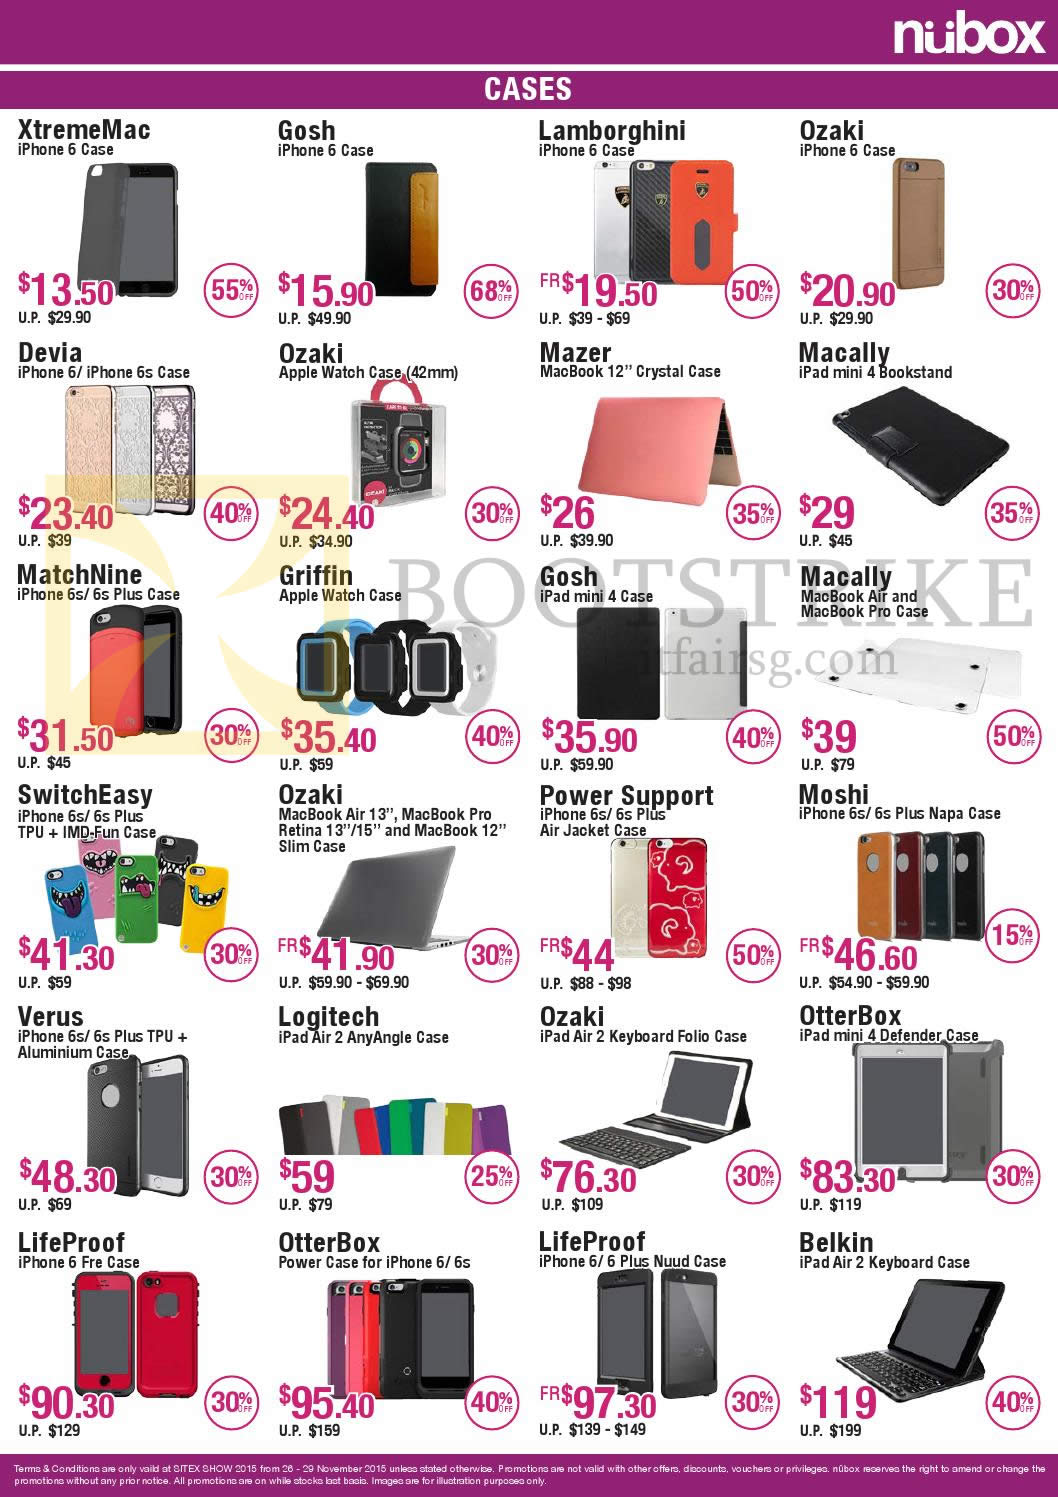 SITEX 2015 price list image brochure of Nubox Cases XtremeMac, Gosh, Lamborghini, Ozaki, Devia, Mazer, Gosh, SwitchEasy, Logitech, Verus, OtterBox, LifeProof, Belkin